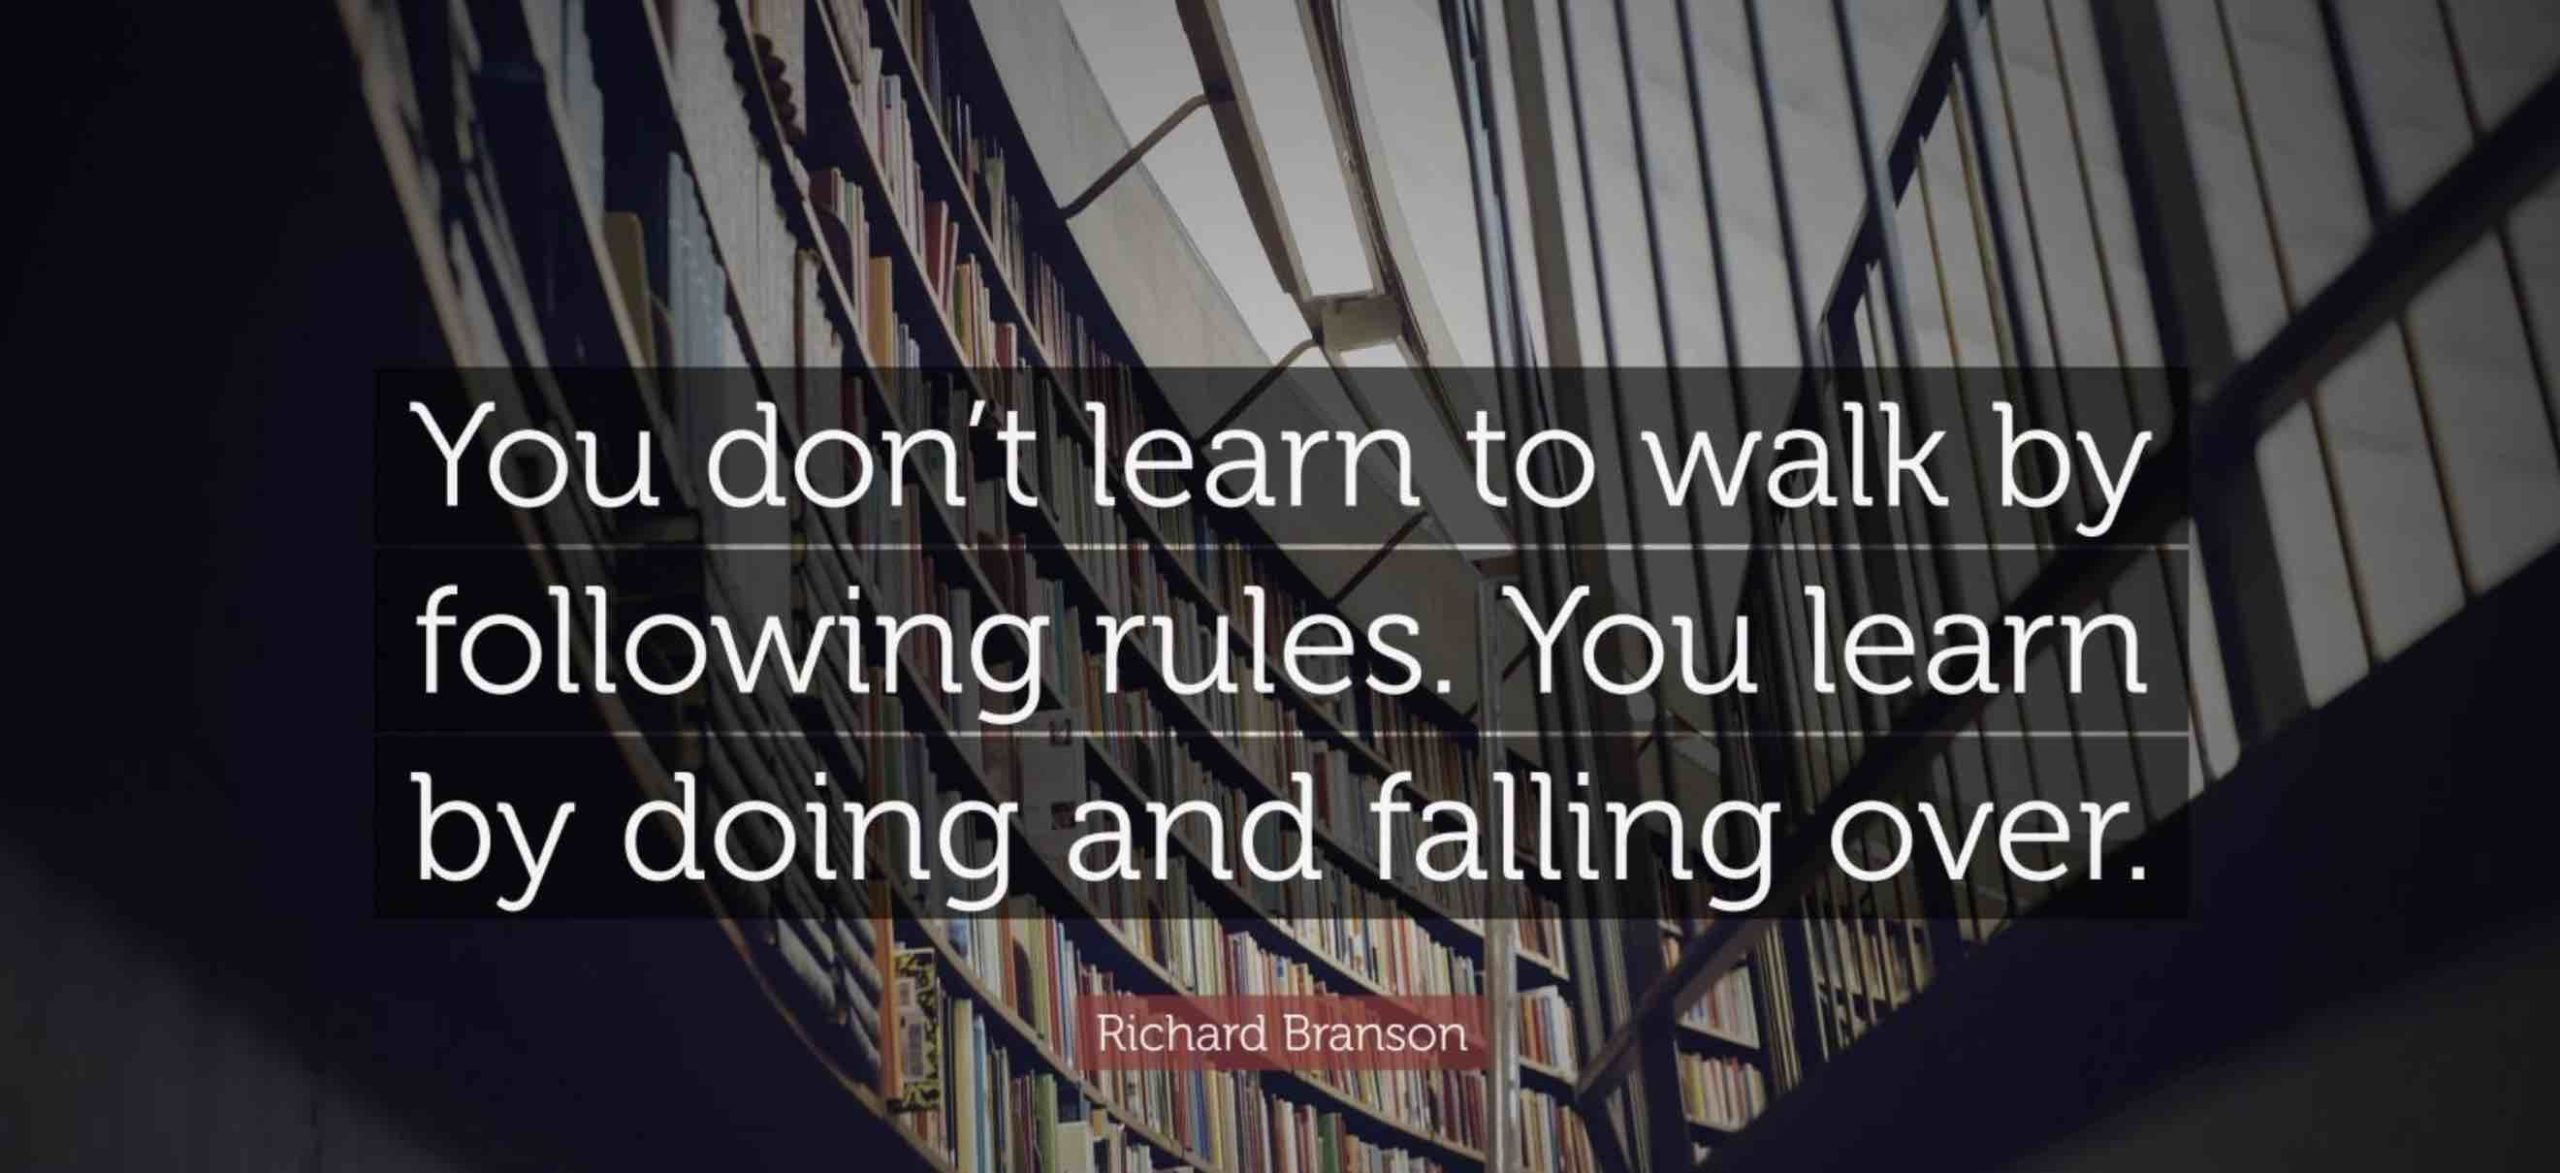 Richard Branson Quote on Life and Success